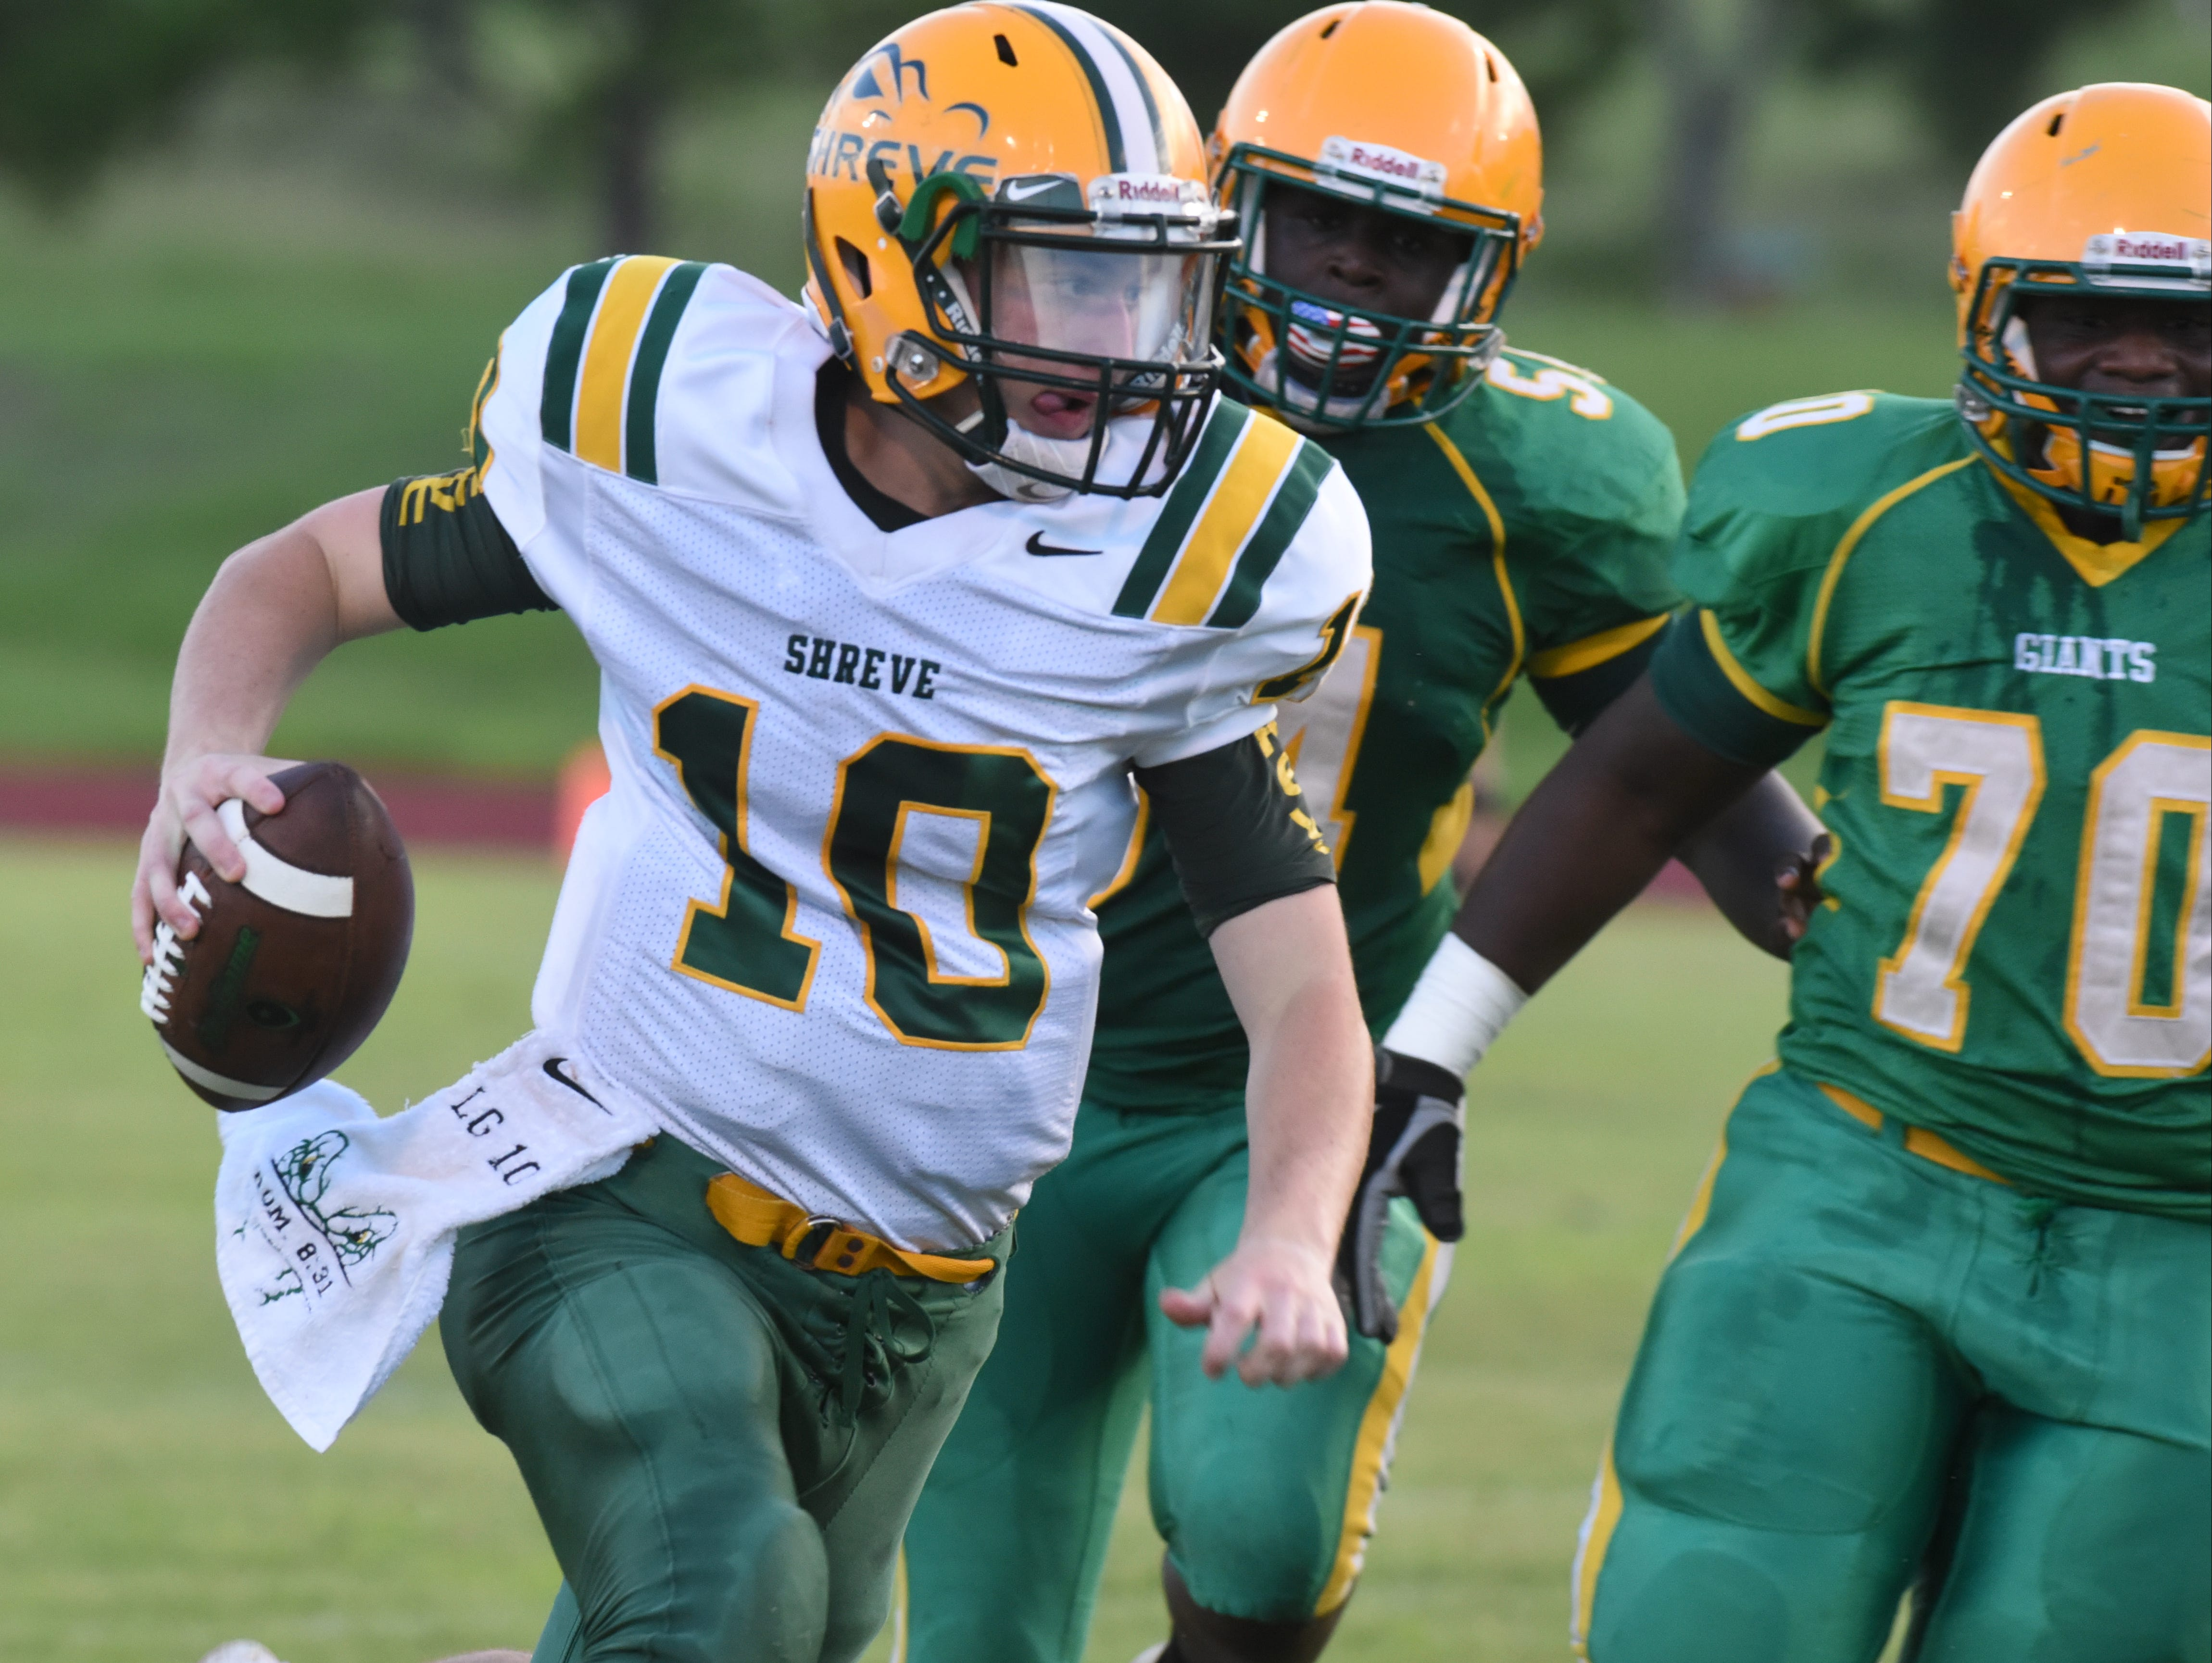 Capt. Shreve quarterback Lucas Grubb sprints from the backfield while being chased by Green Oak defenders.